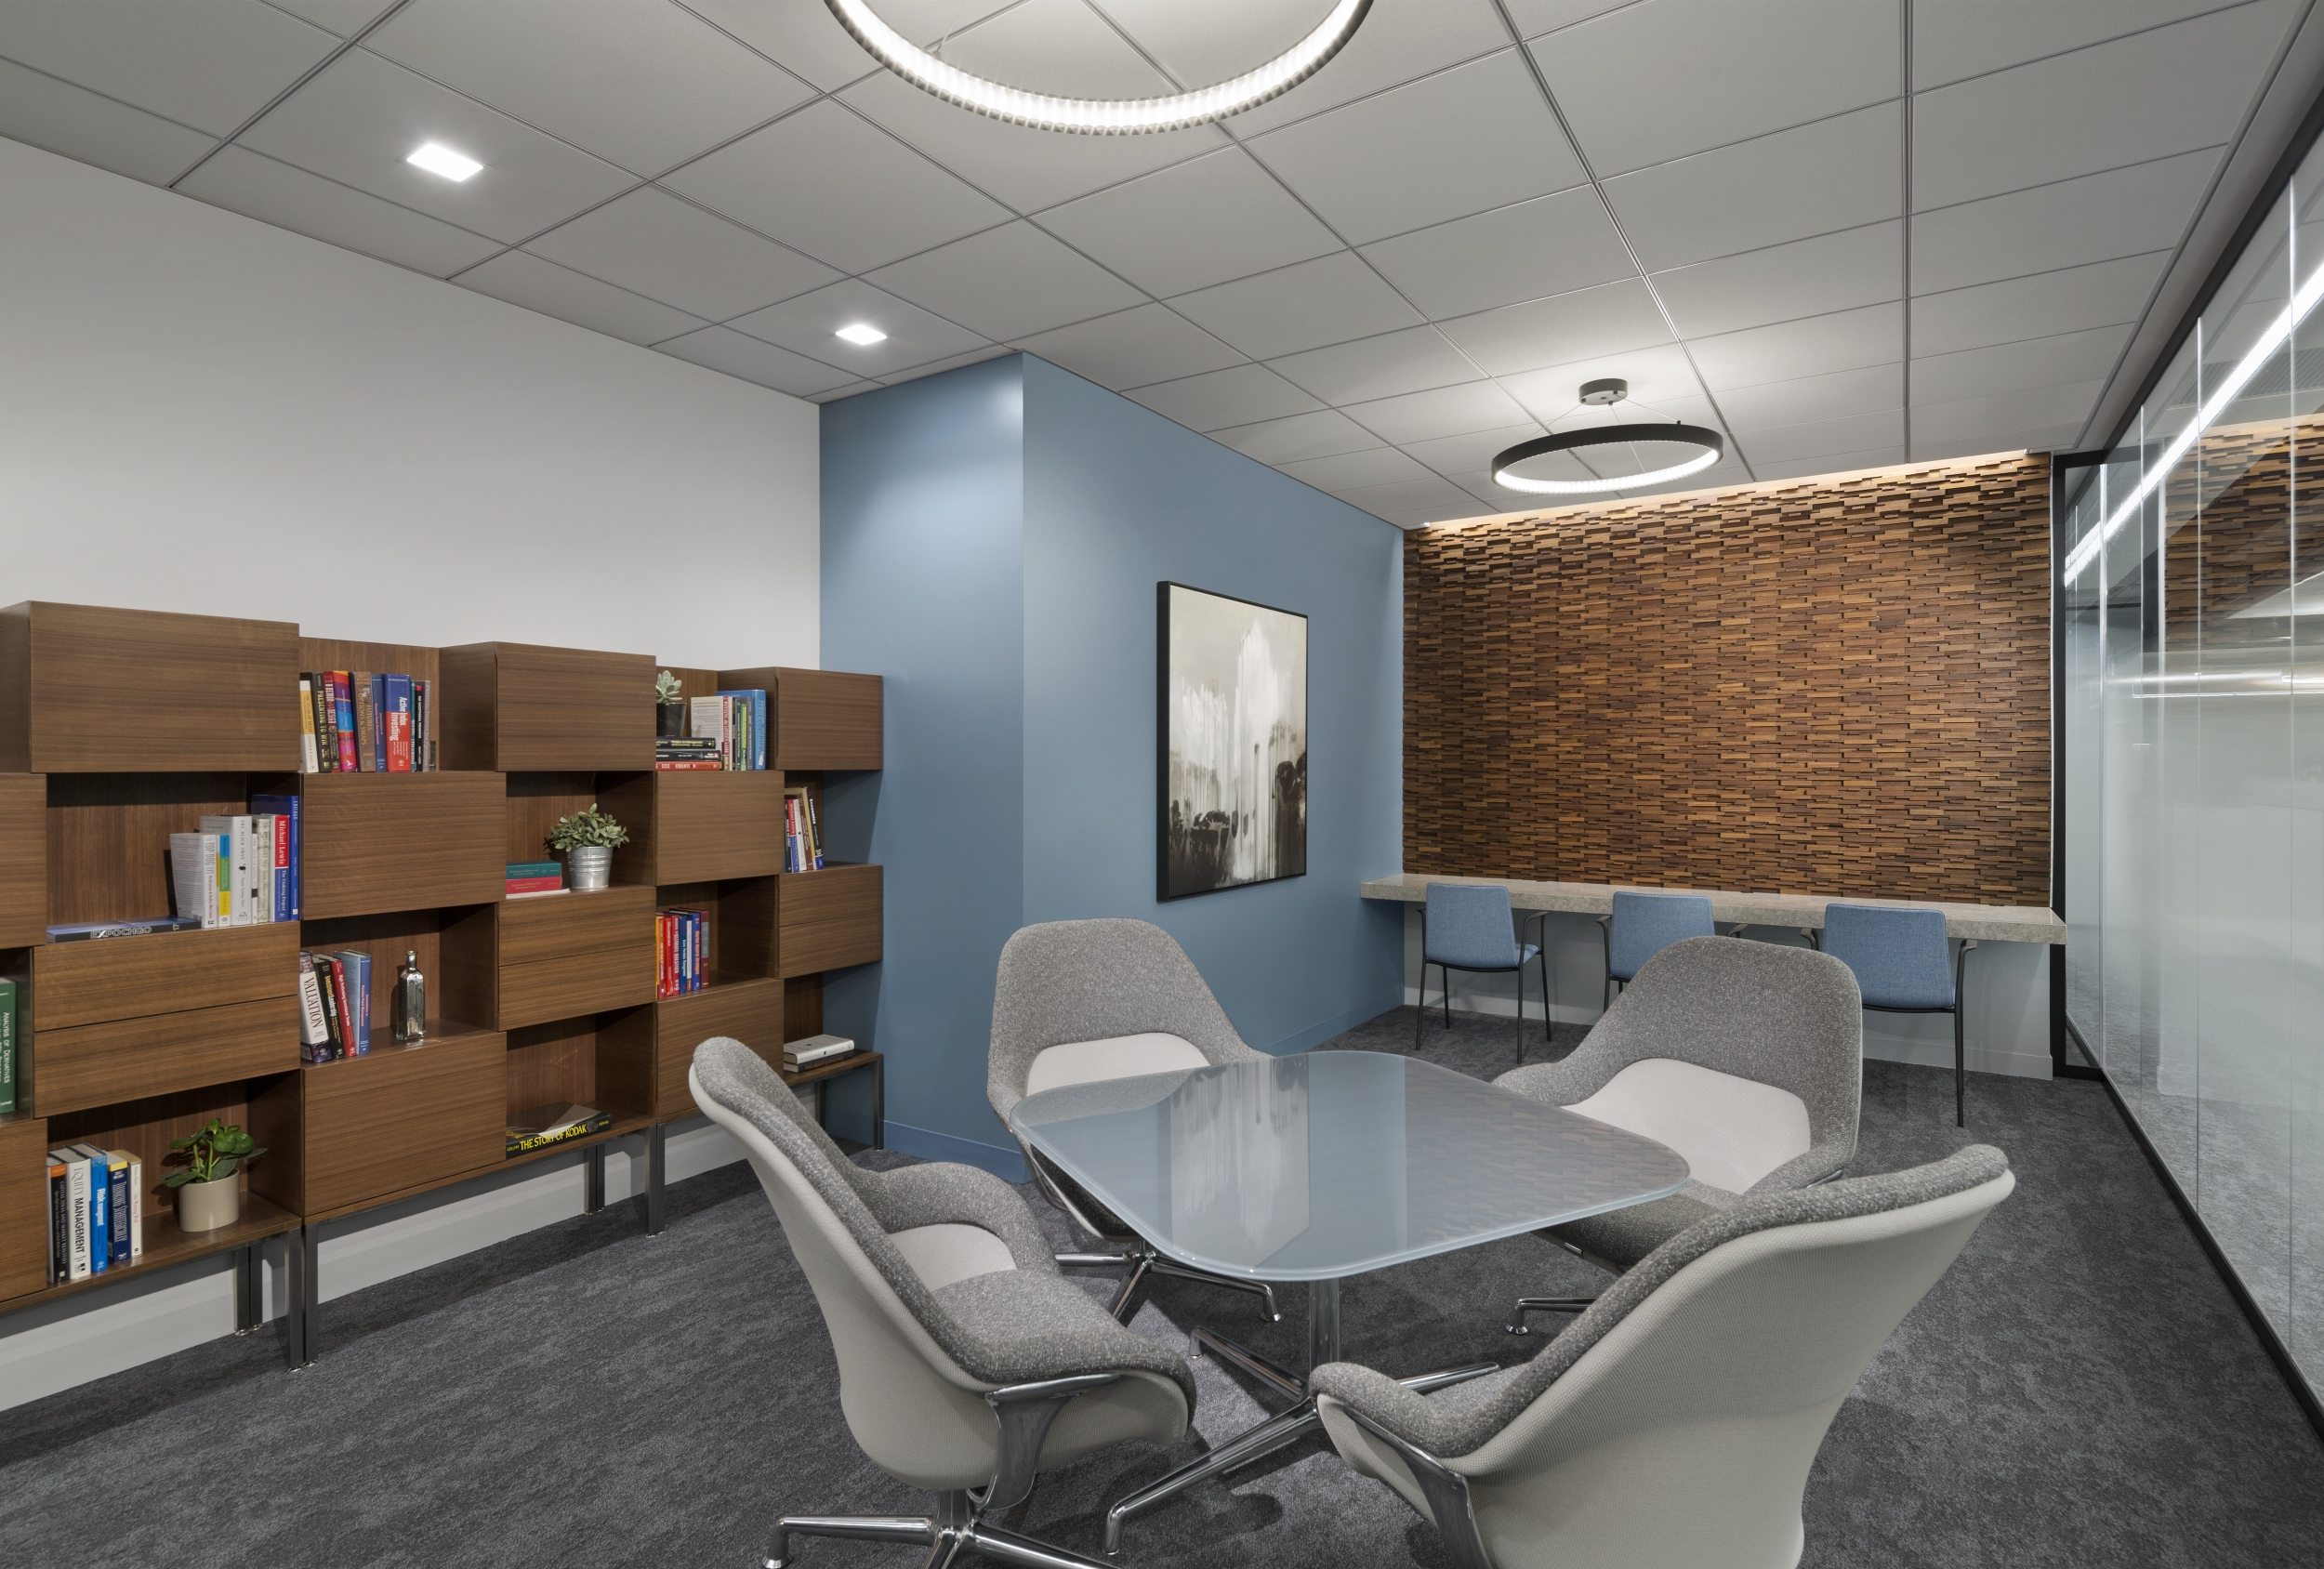 Meeting room at Northern Trust, M15 and M23.